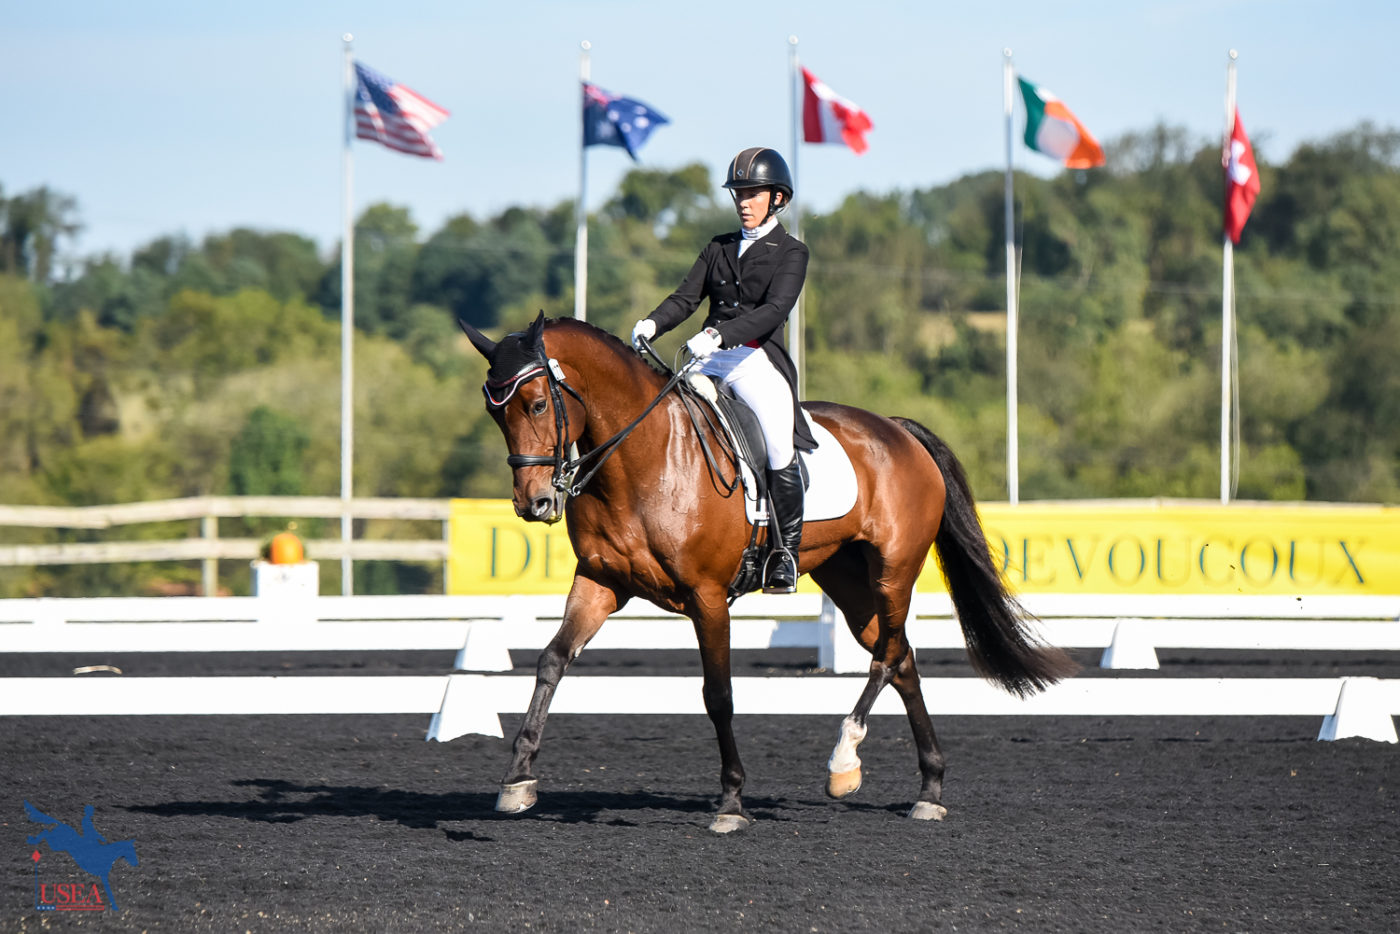 5thT - Fylicia Barr and Galloway Sunrise - 30.5